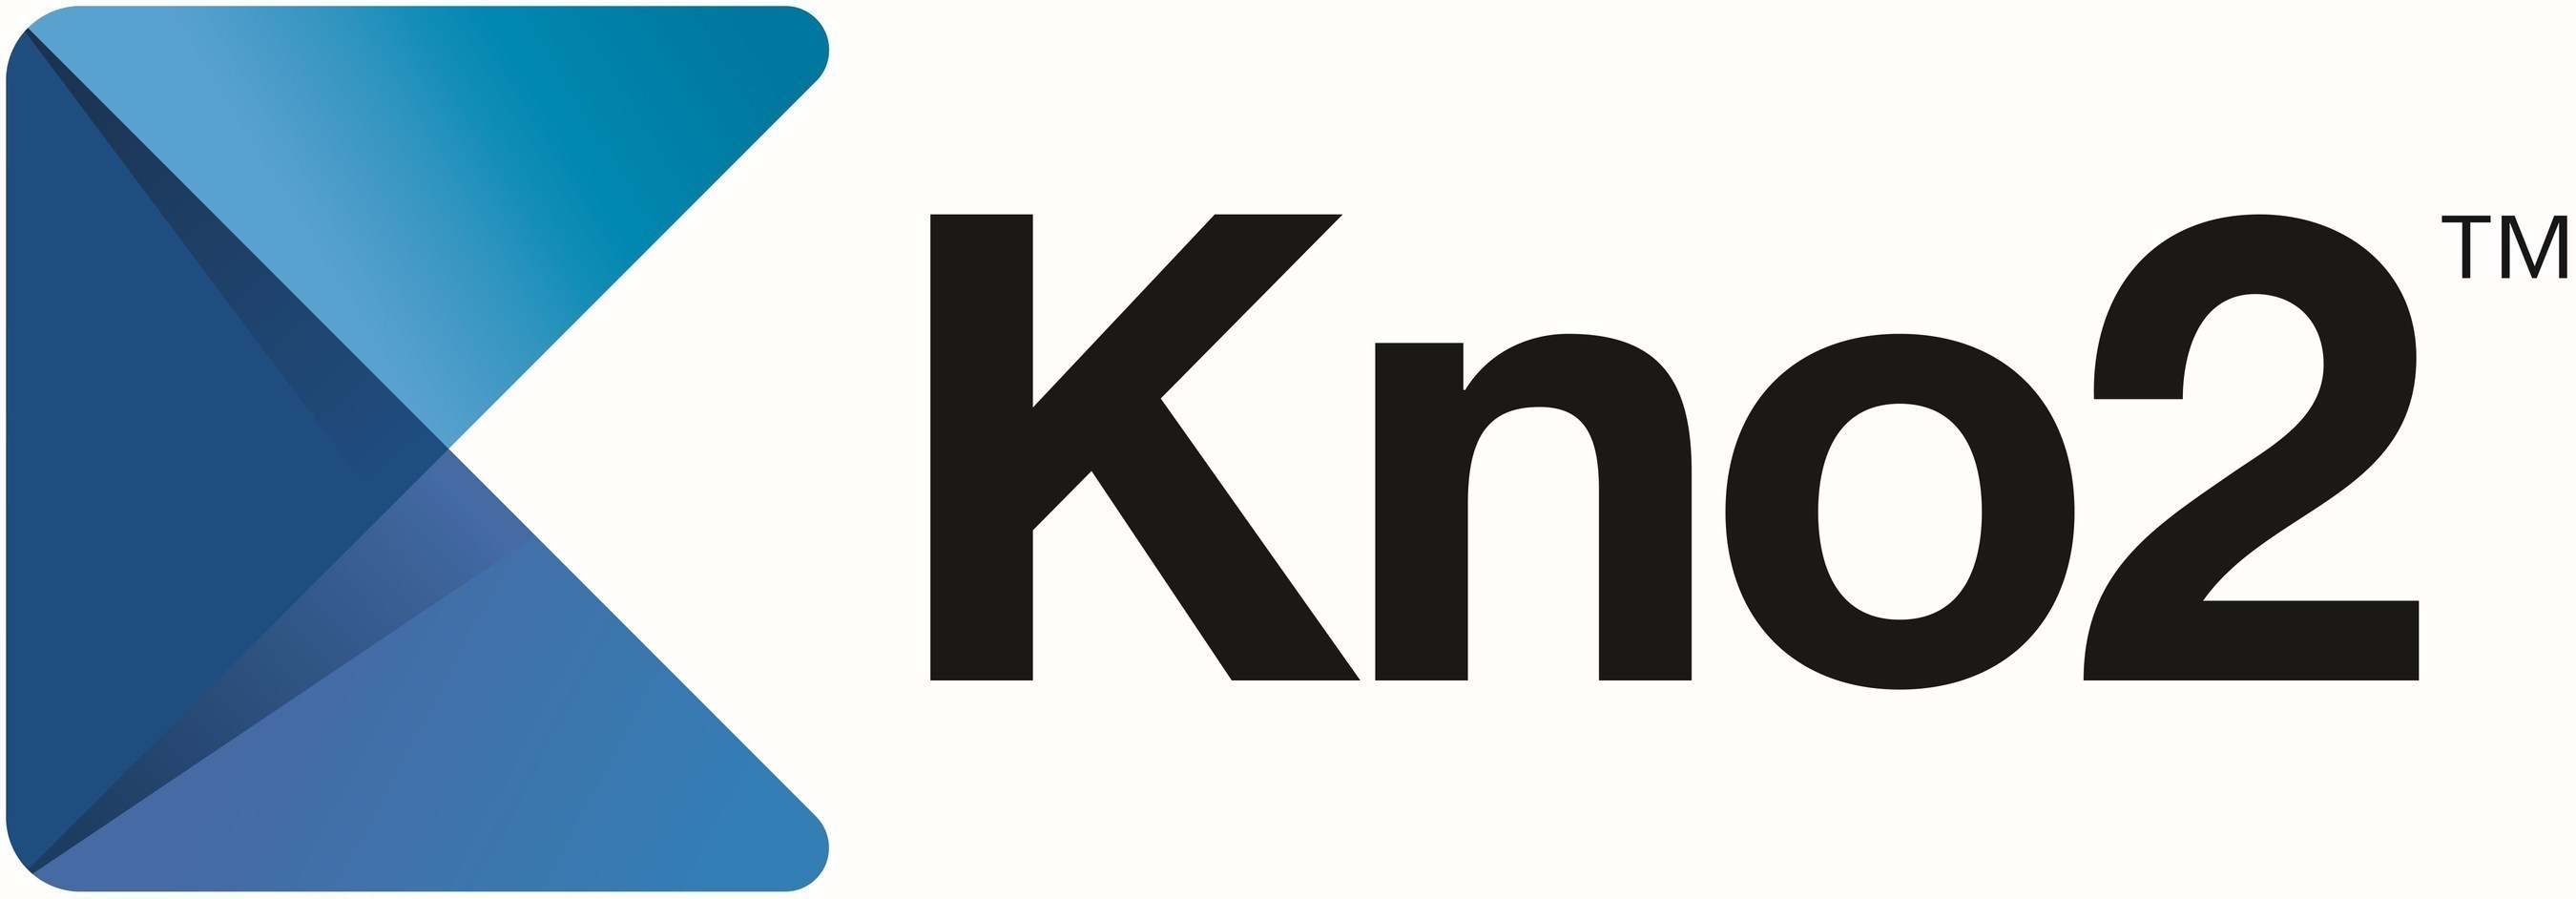 Kno2 solves interoperability for the entire healthcare continuum. Physician practices, emergency medical services, long-term care providers and more use Kno2 to securely exchange clinical information-without changing their workflow. The platform creates clinical document exchange from all common document sources, from electronic medical records to faxes and printers. Even healthcare providers with limited resources can participate in the structured exchange of clinical documents. (PRNewsFoto/Kno2)